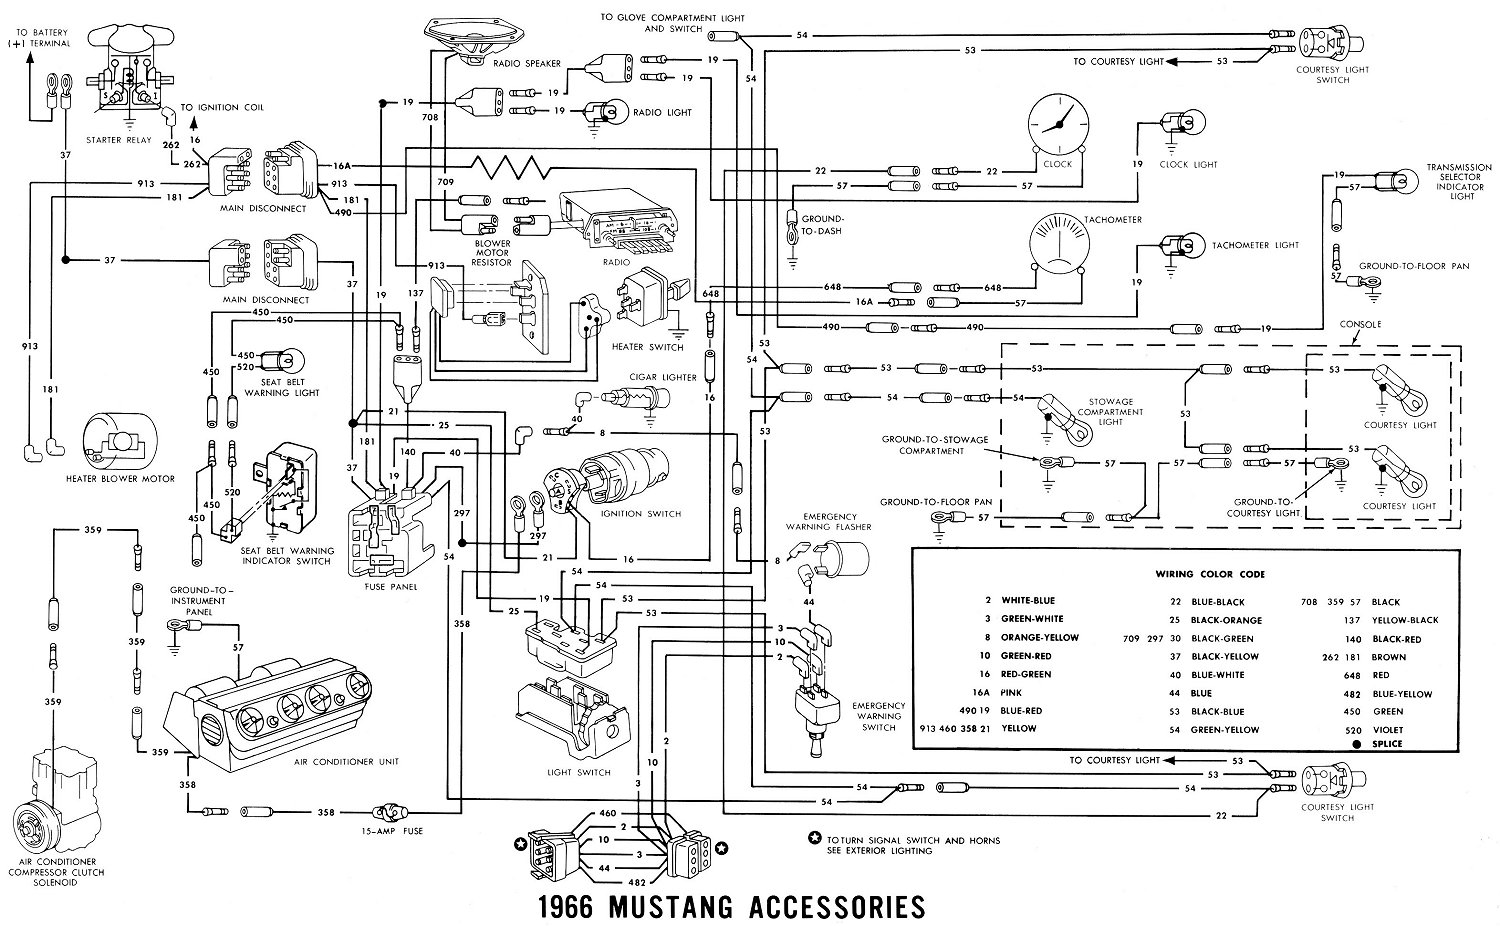 66acces1 66 mustang wiring diagram online 65 ford mustang wiring diagram 1969 mustang wiring diagram online at gsmx.co